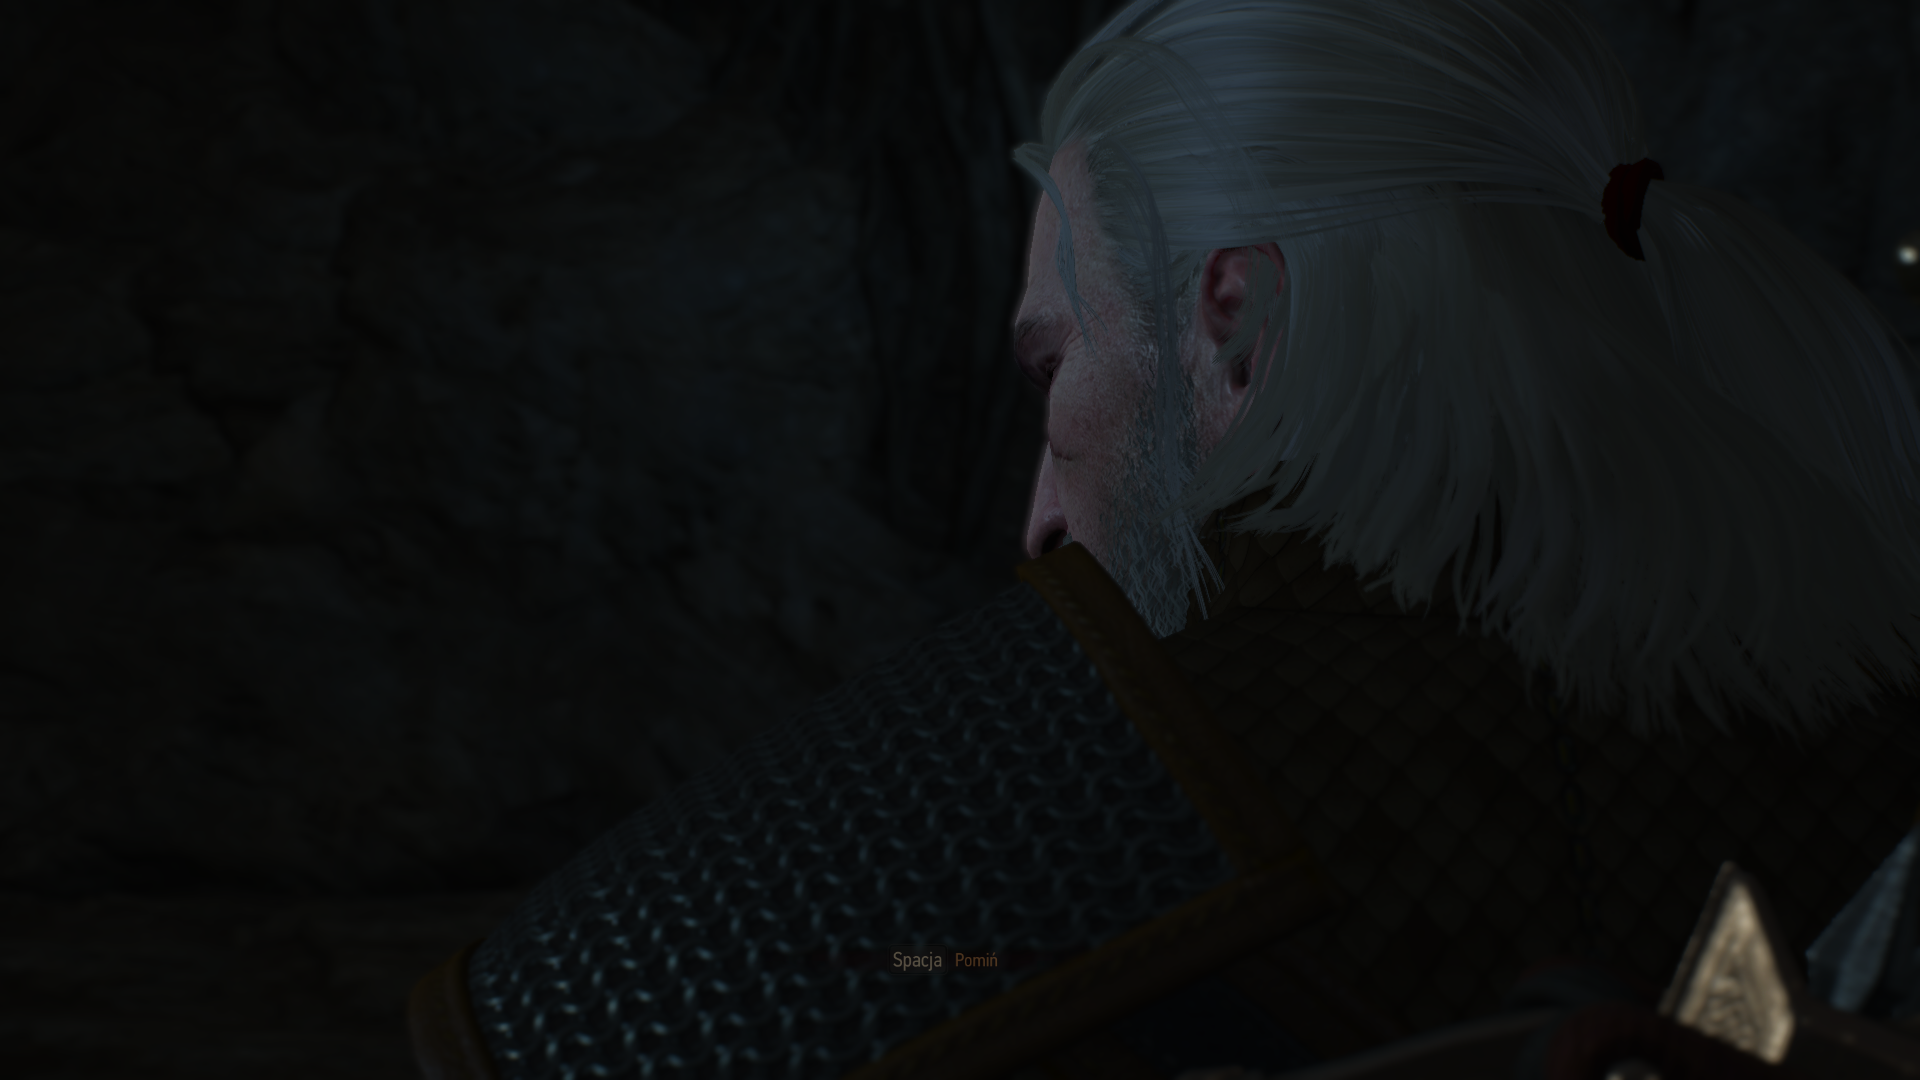 The Witcher 3 05.01.2019 19_17_48.png - Witcher 3: Wild Hunt, the